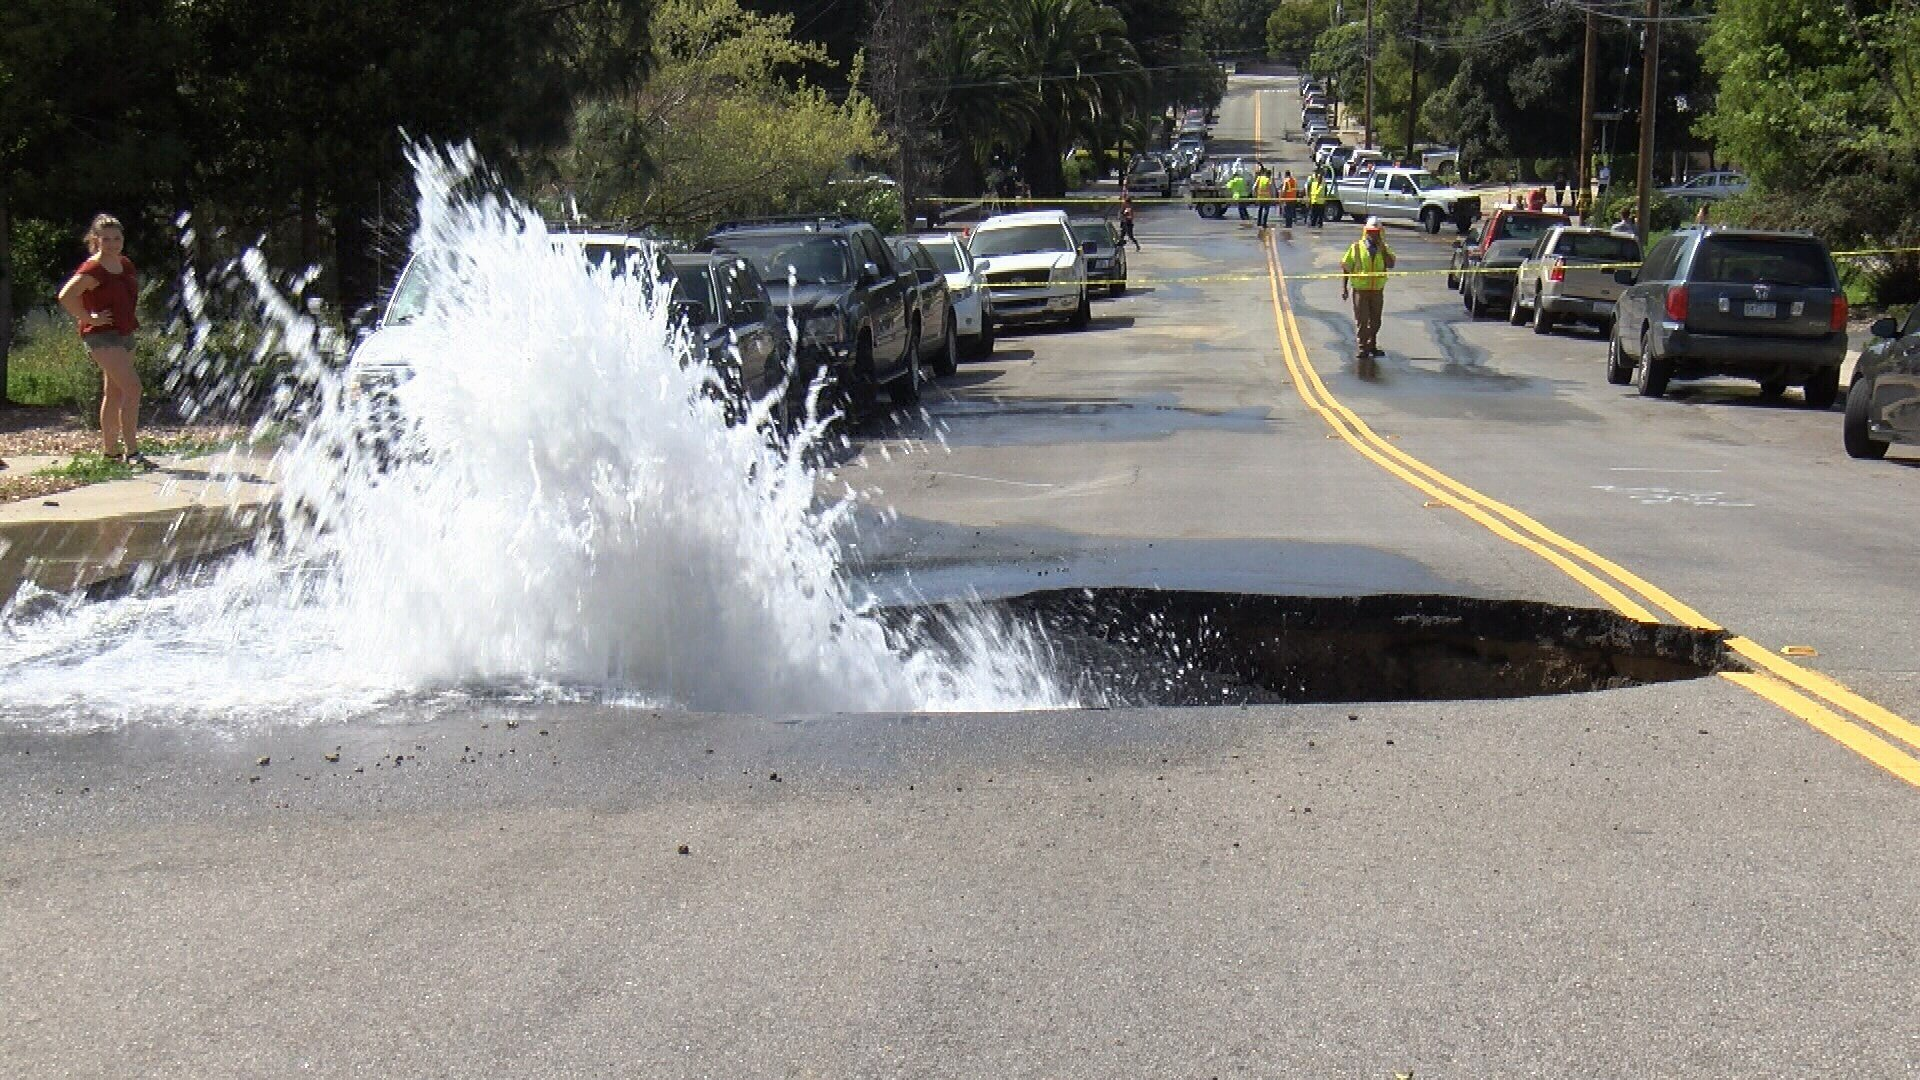 Water flows from a sinkhole on Fredericks Street. (KSBY photo)